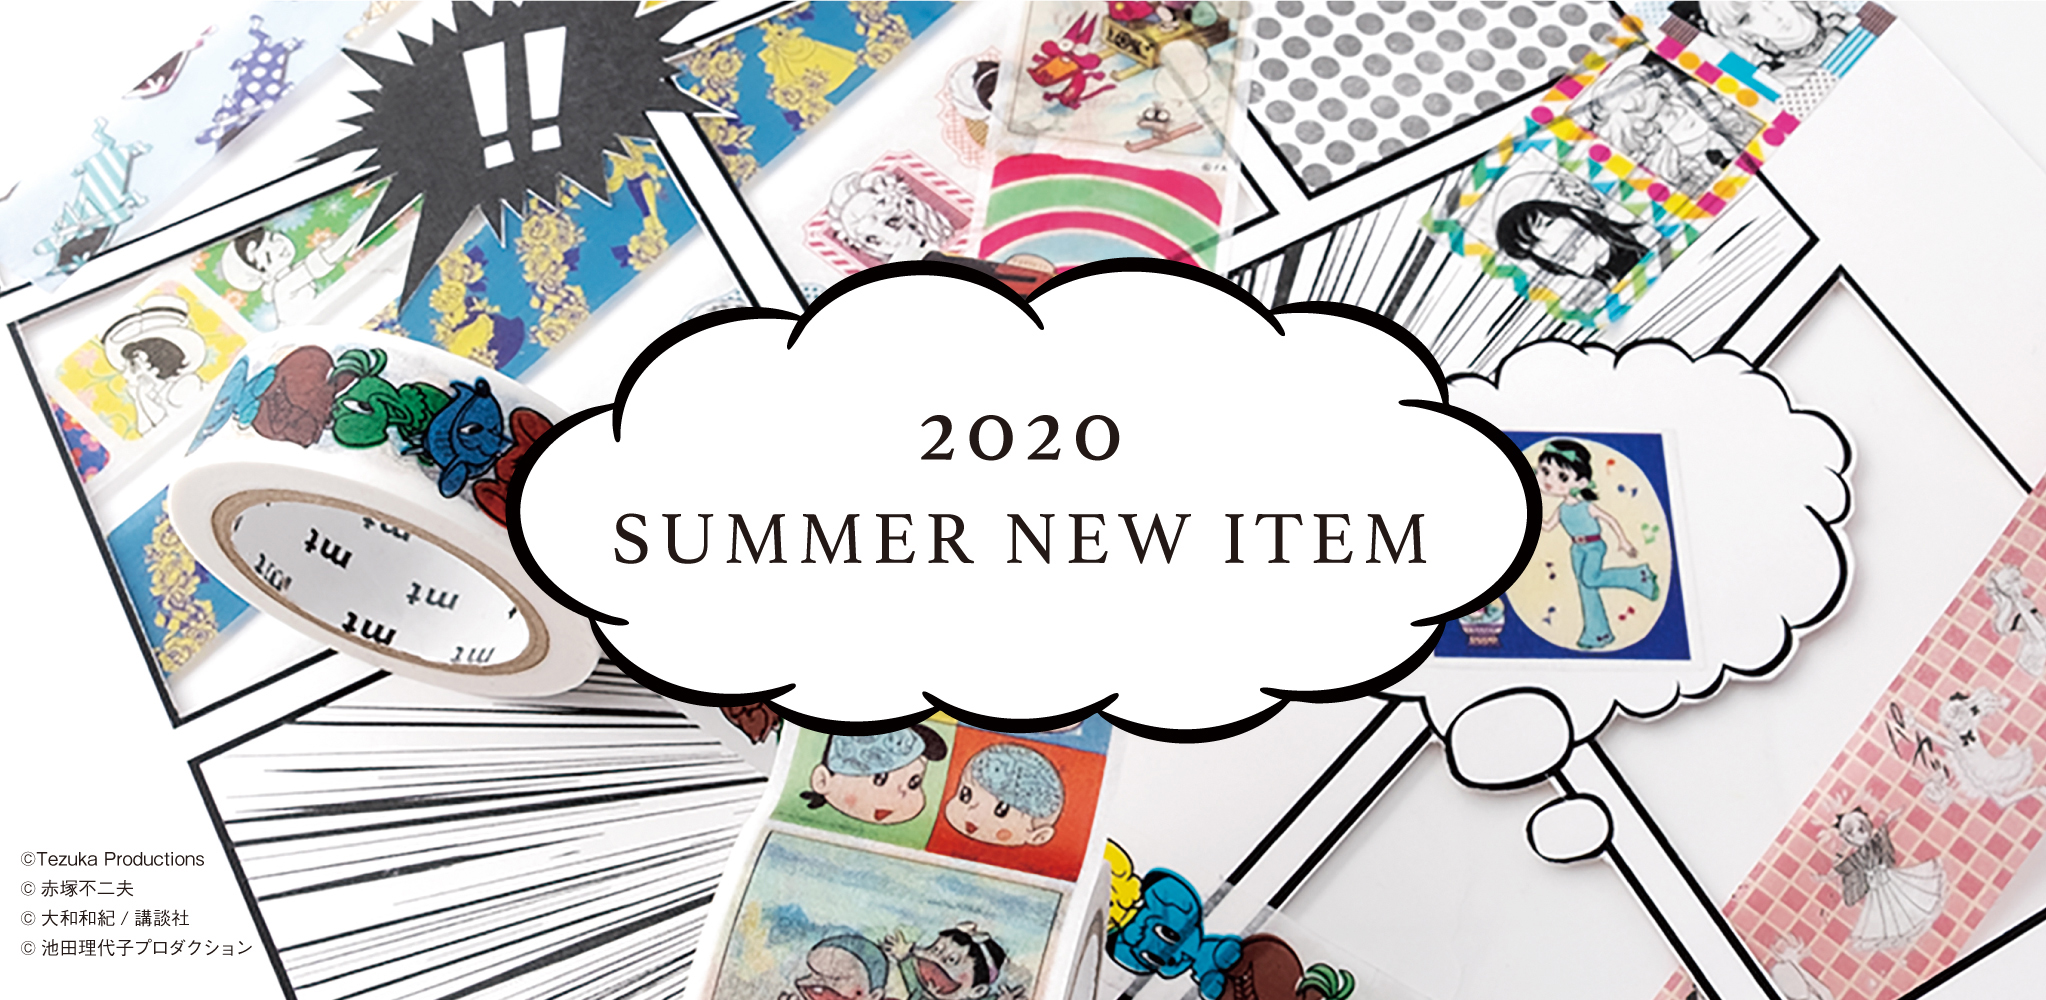 2020 SUMMER NEW ITEM